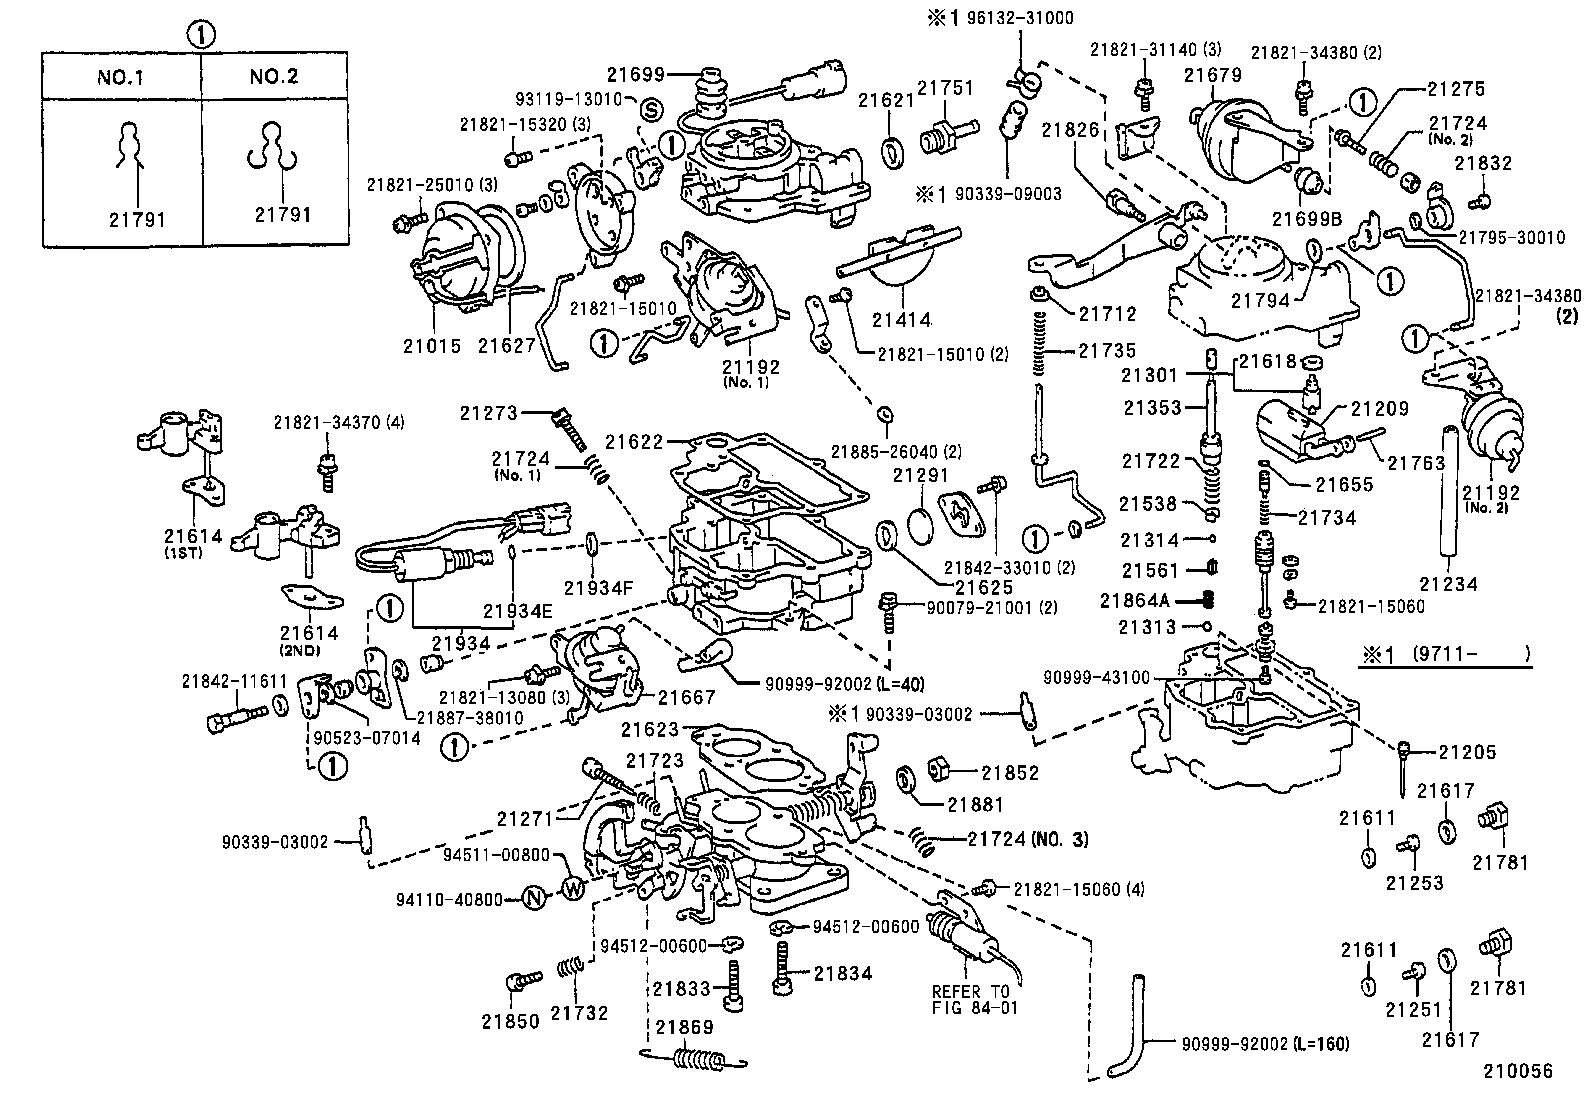 Toyota Camry Parts Diagram